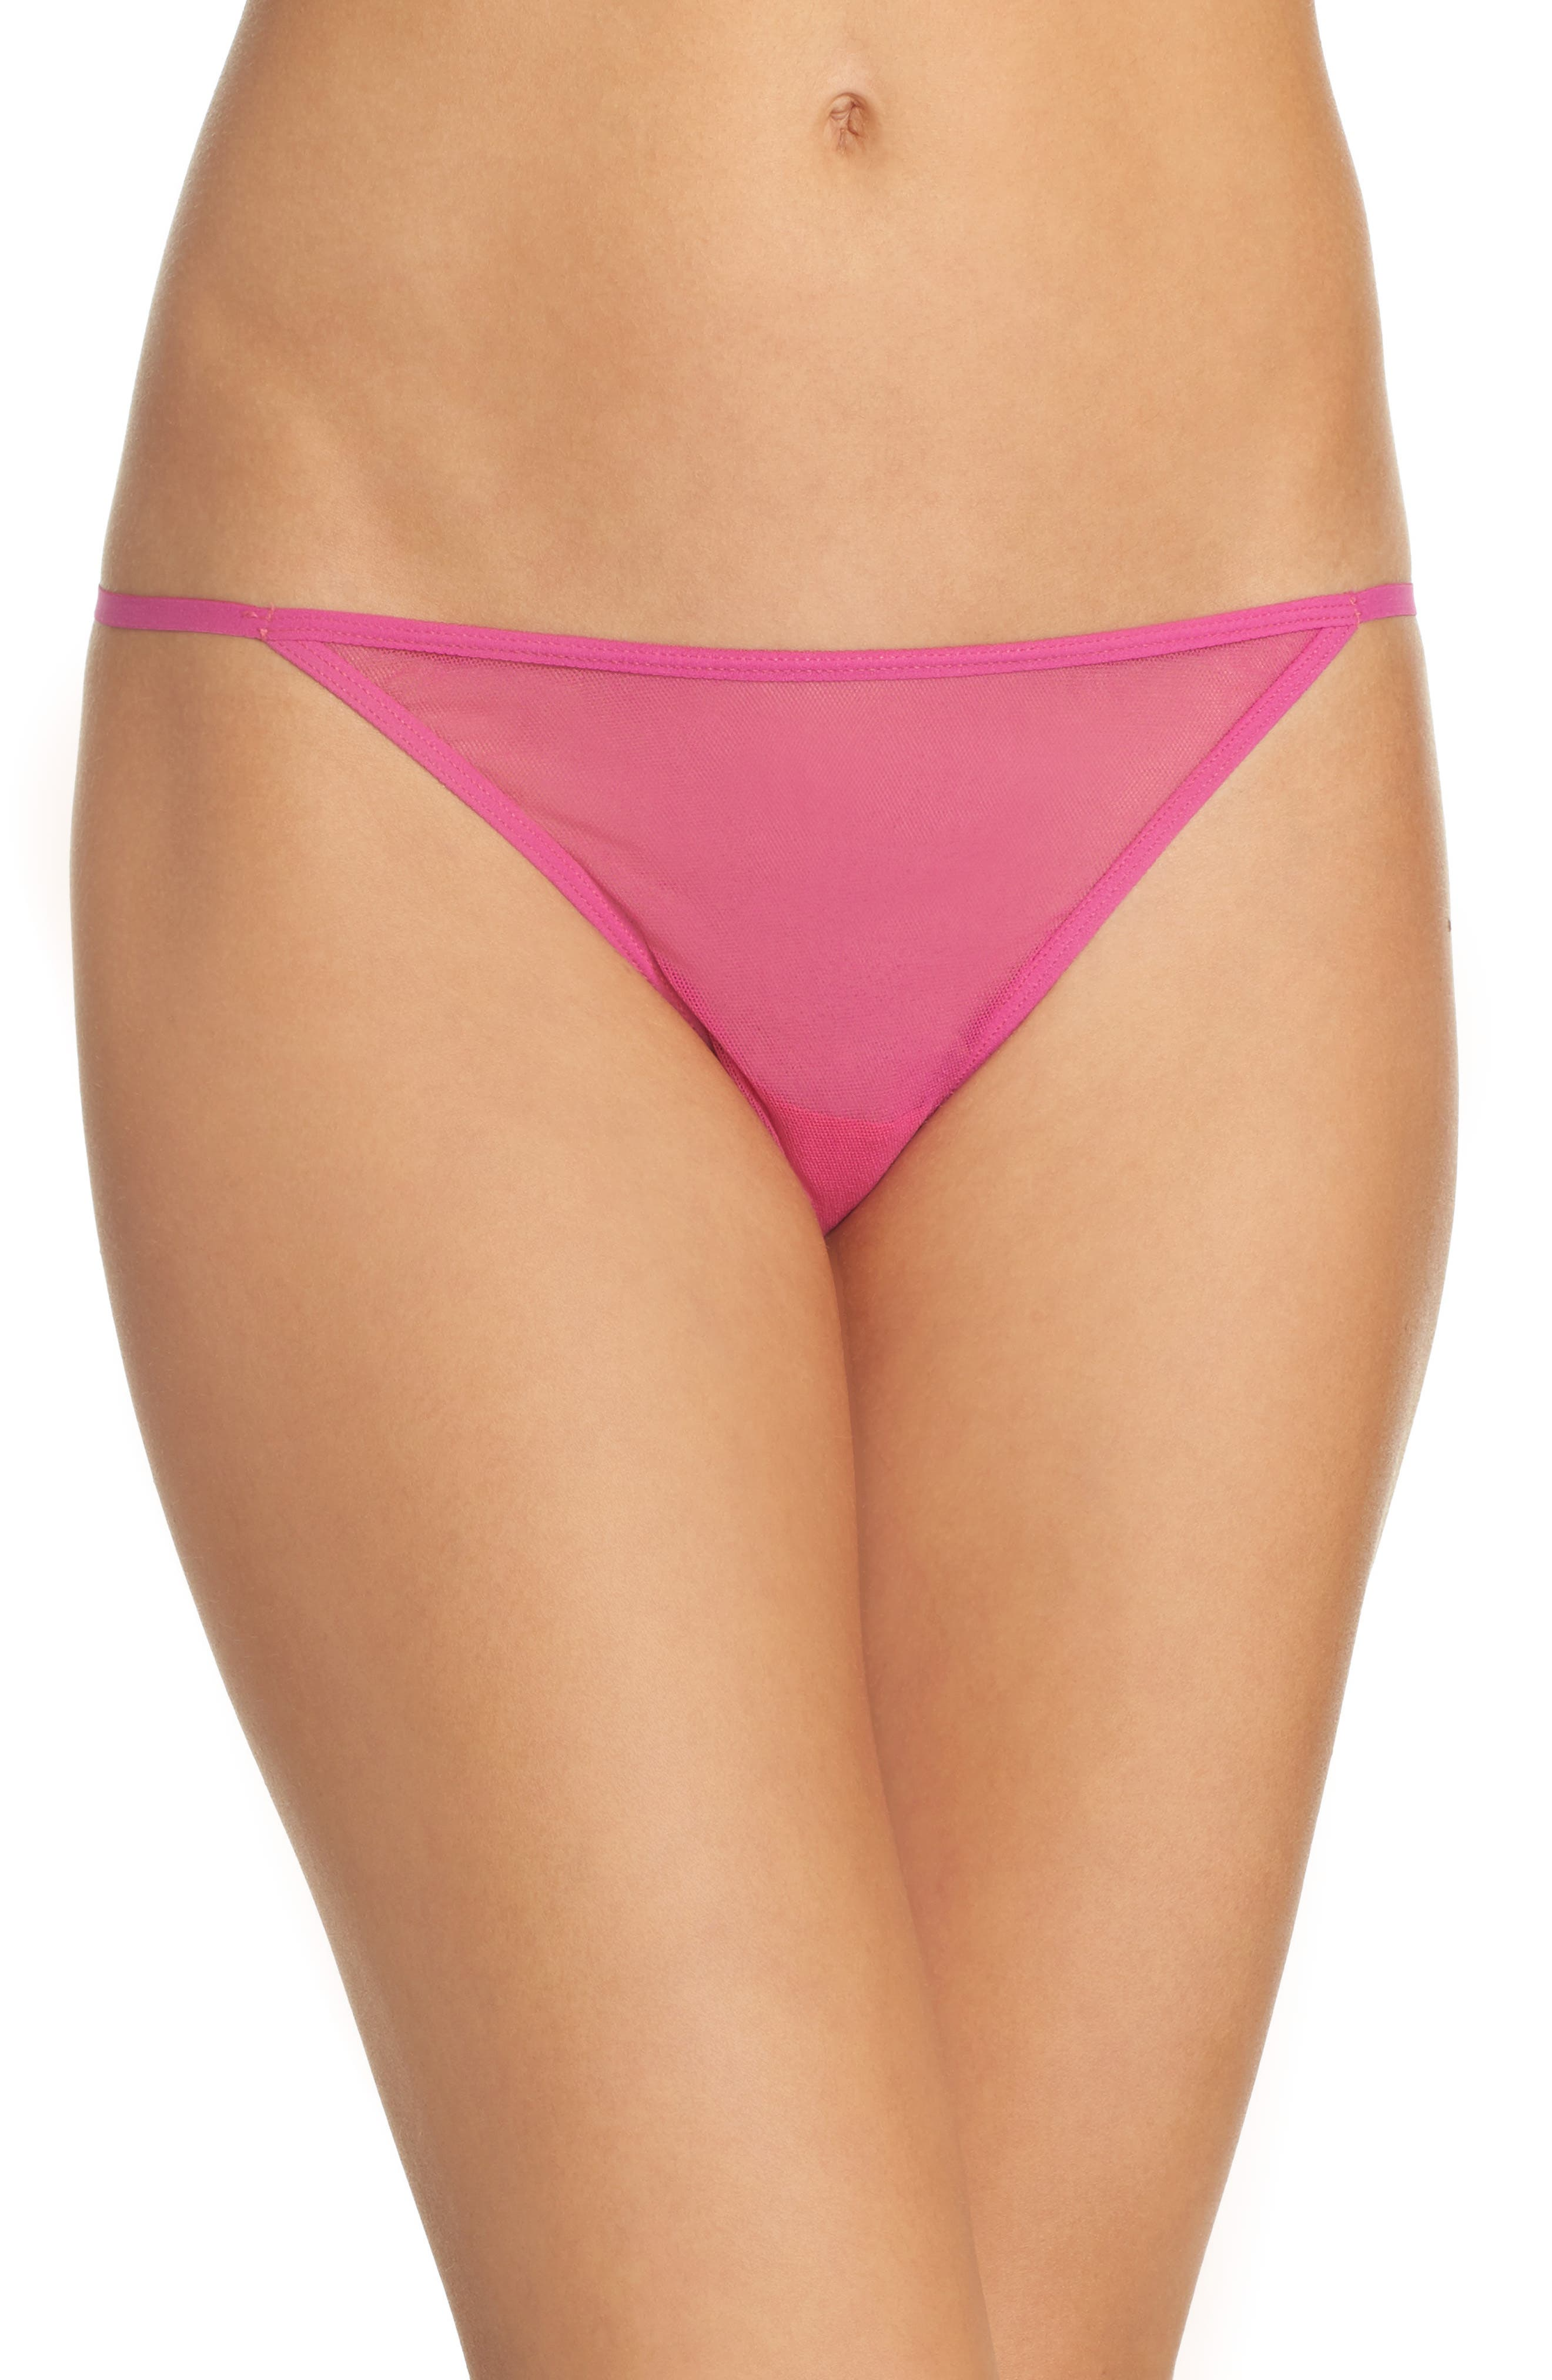 Alternate Image 1 Selected - Cosabella 'Soire New Italian' Thong